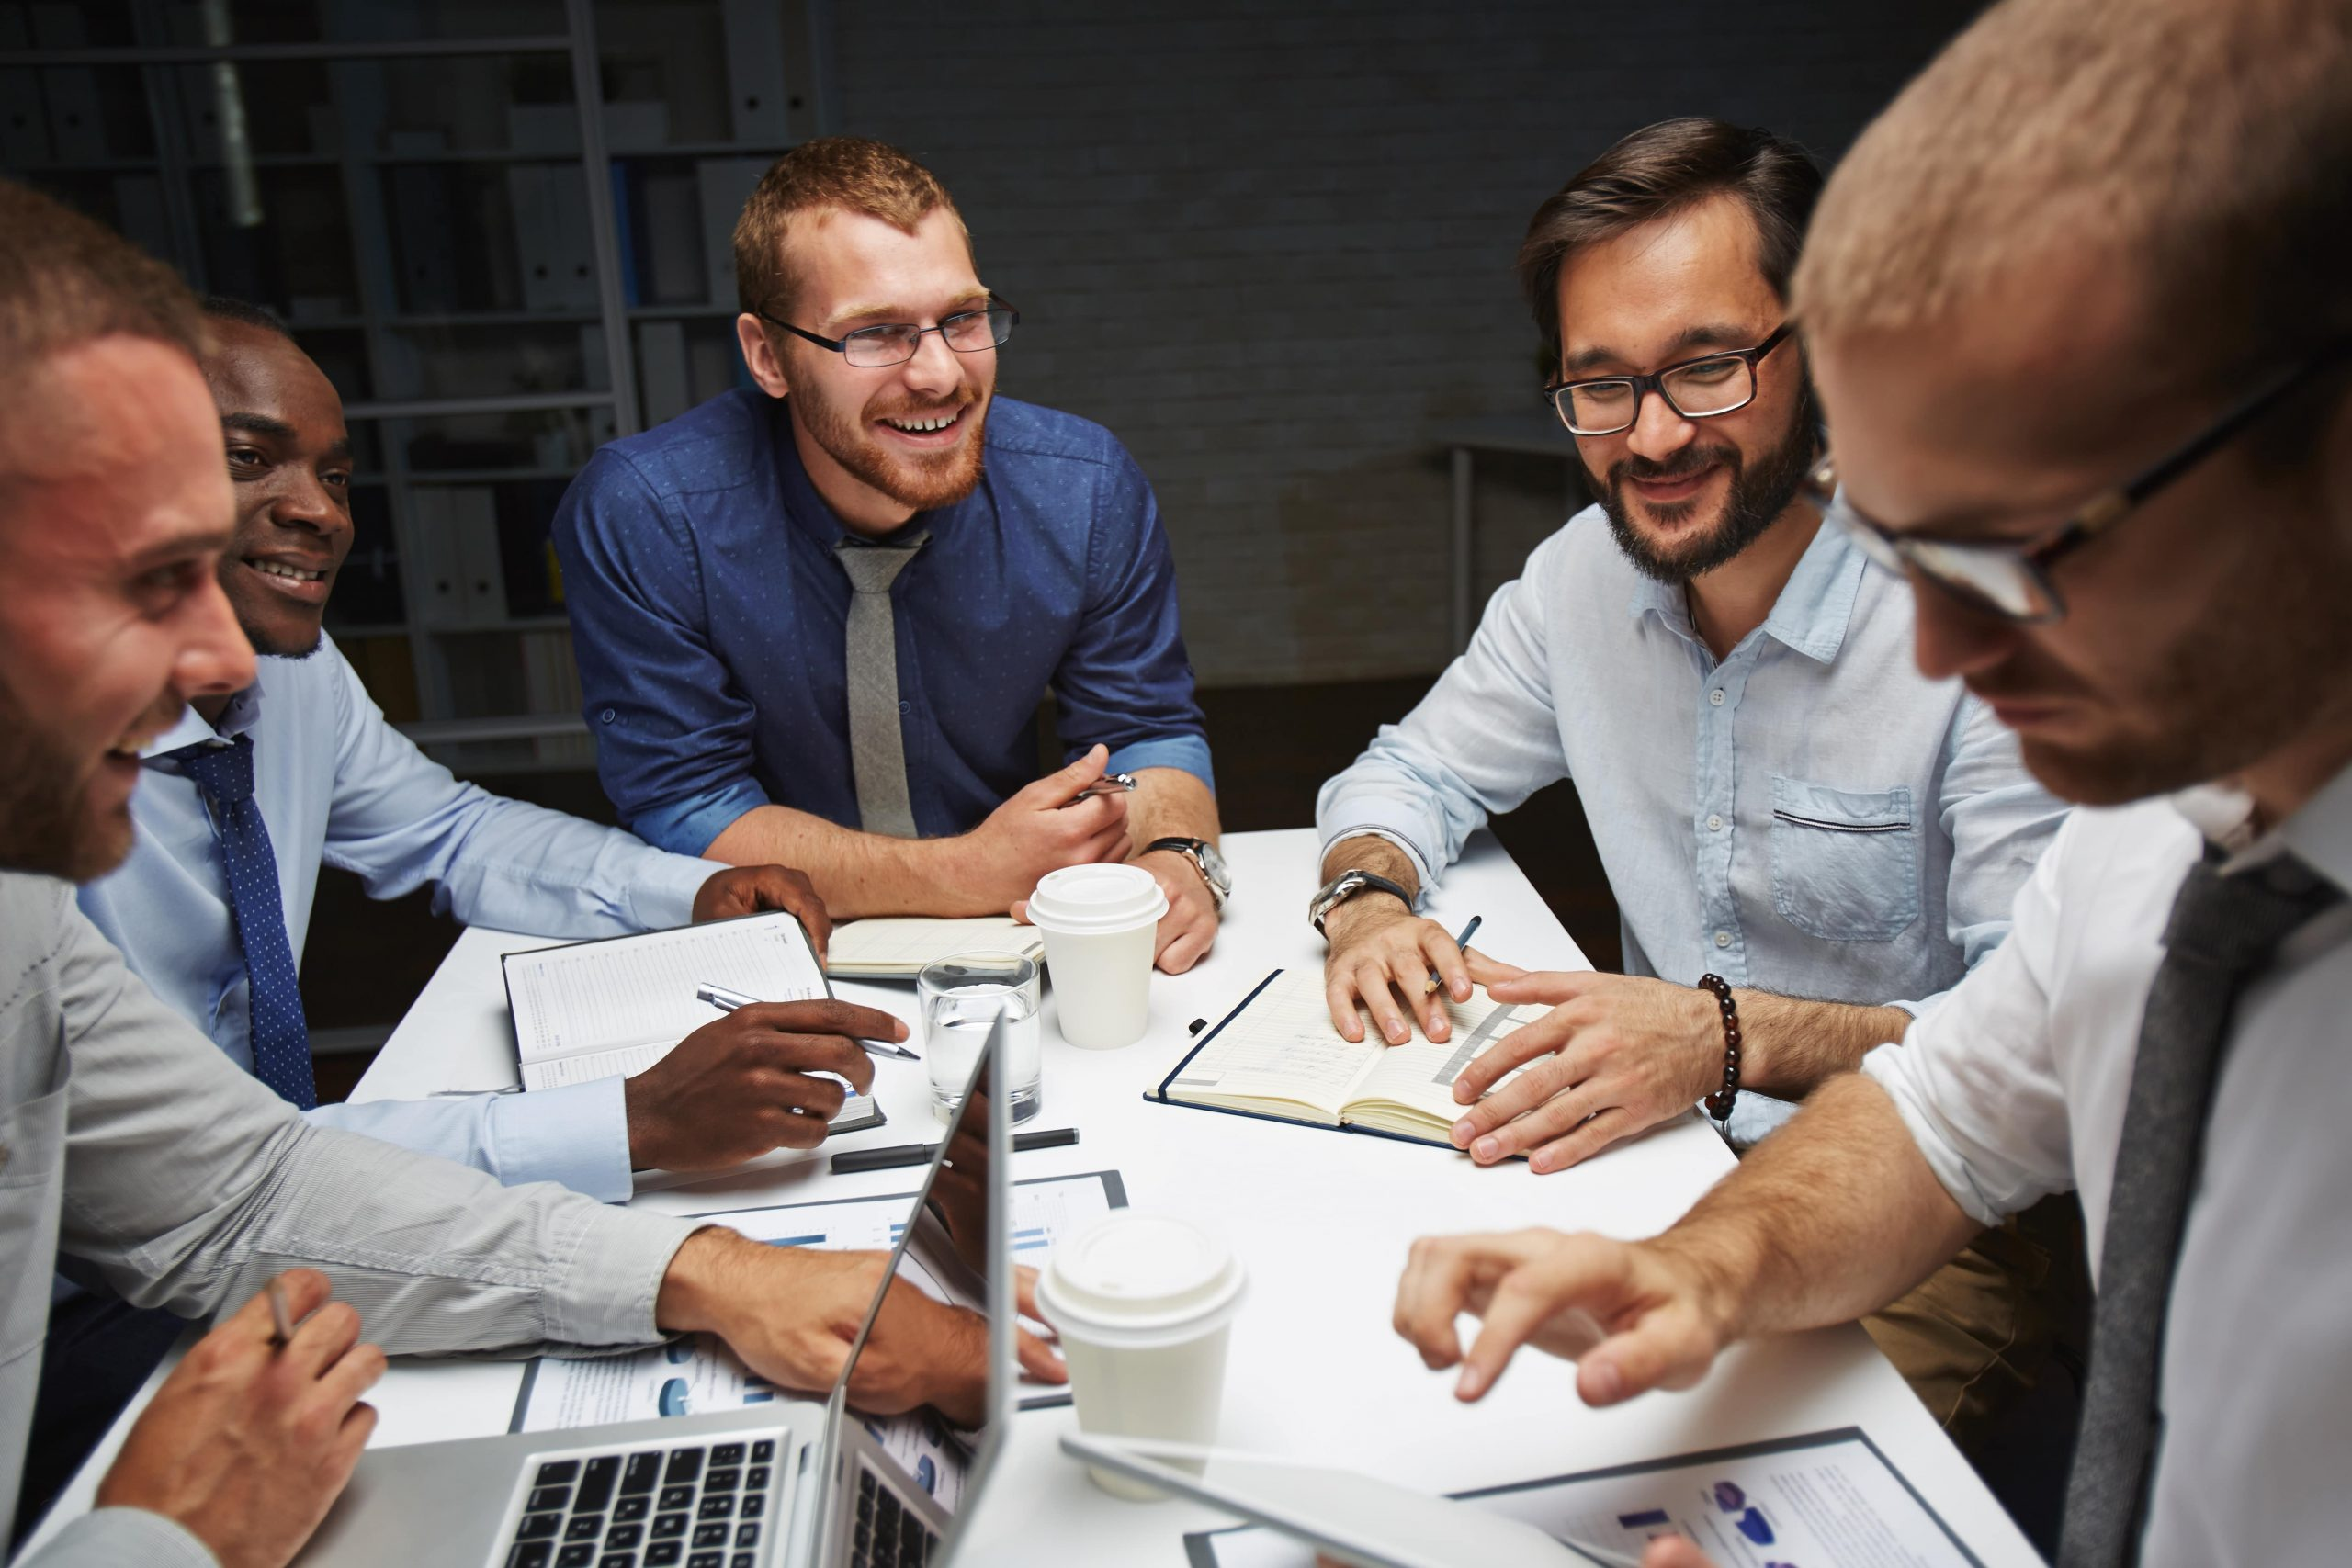 Keeping your Employees Happy is More Than a Higher Paycheck